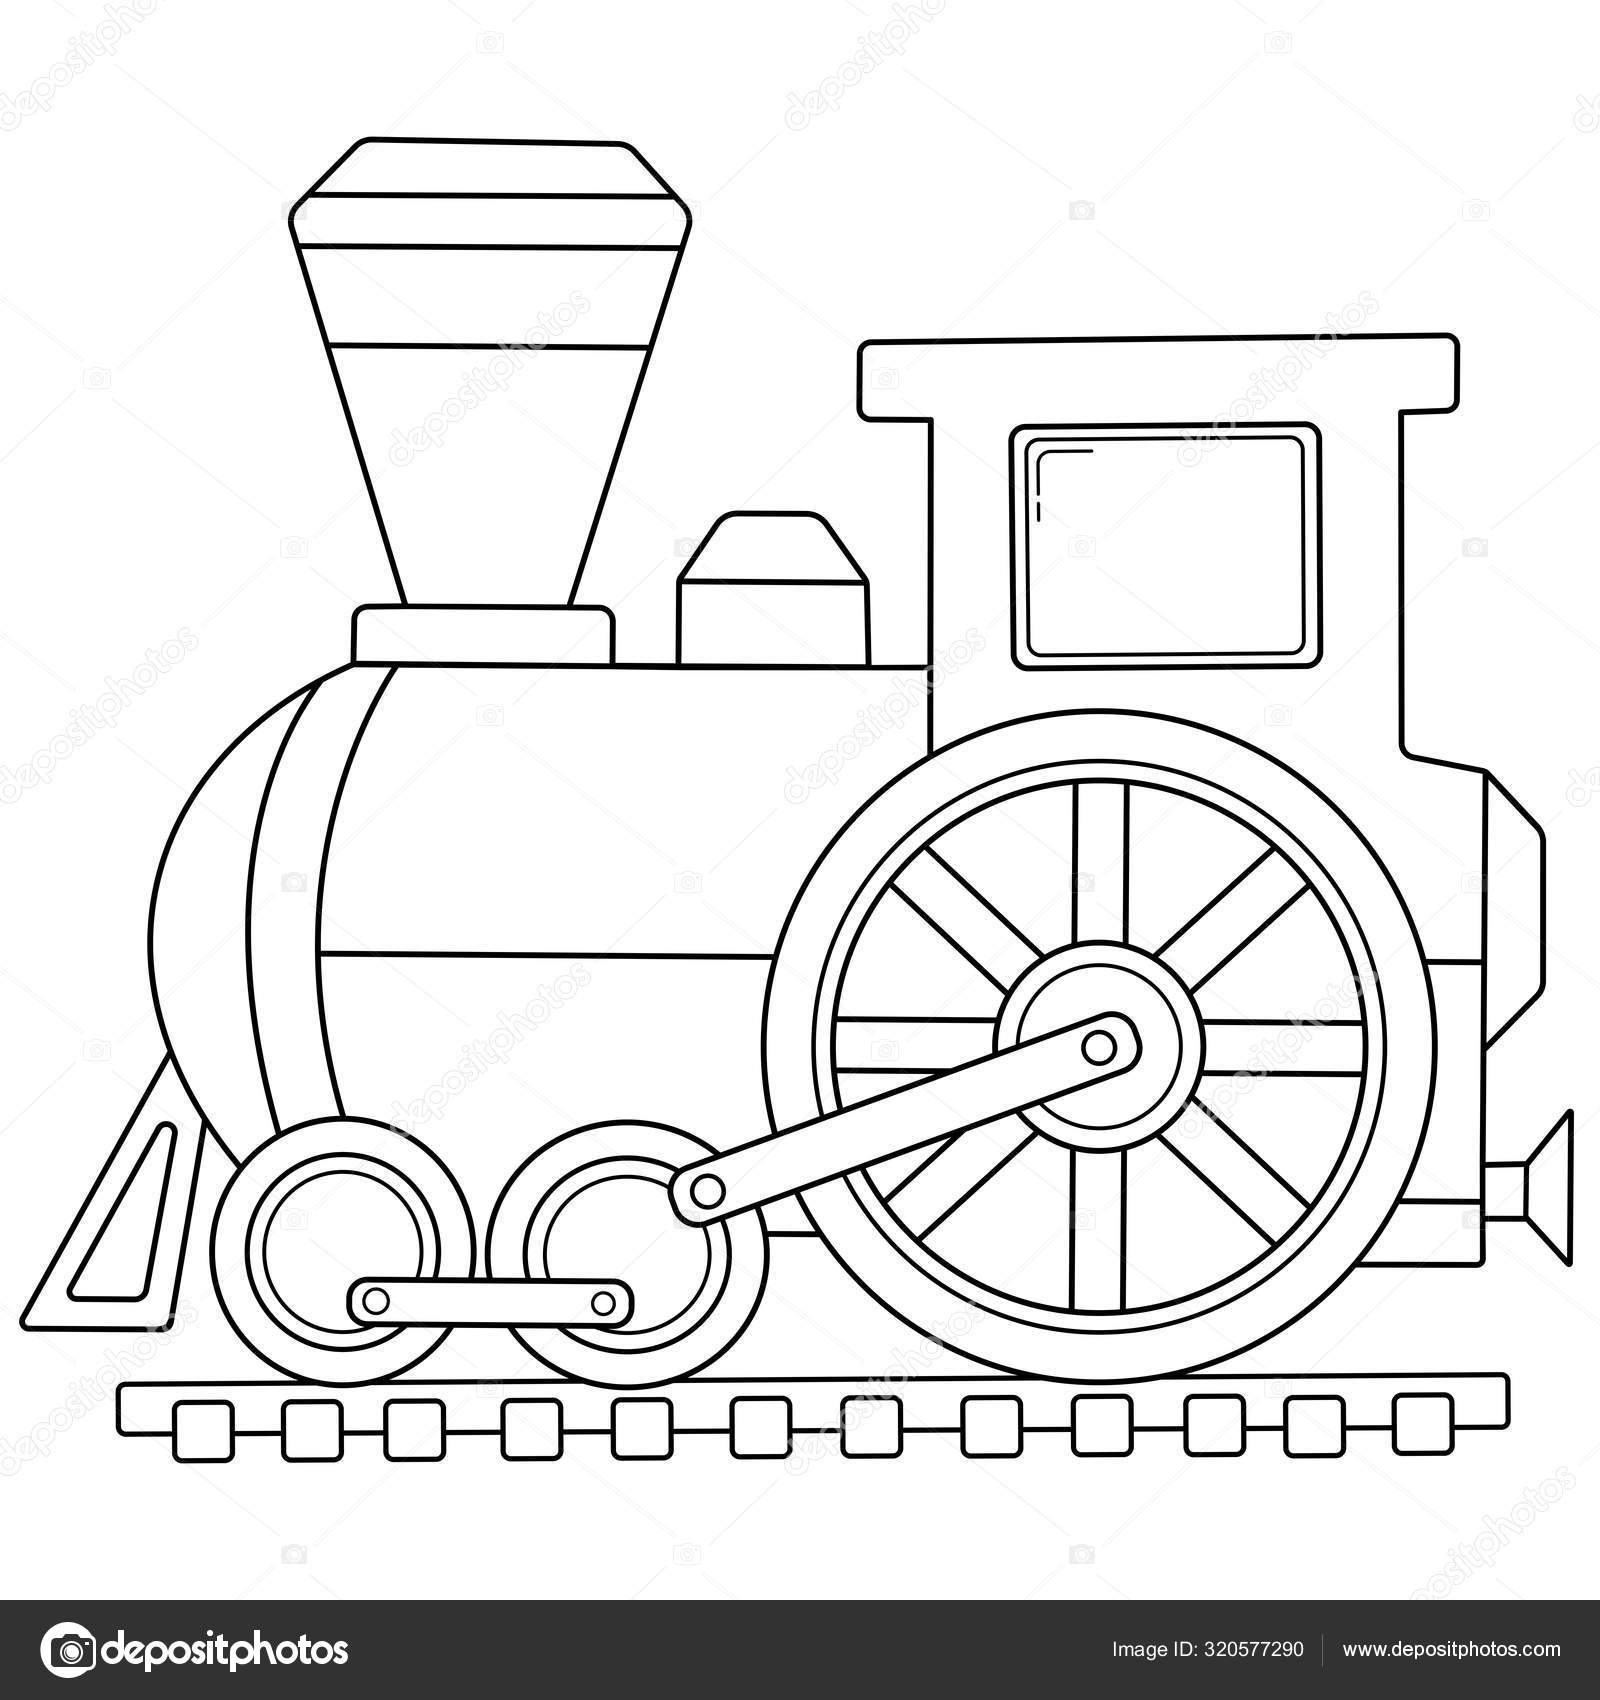 Https Cz Depositphotos Com 320577290 Stock Illustration Coloring Page Outline Of Cartoon Html